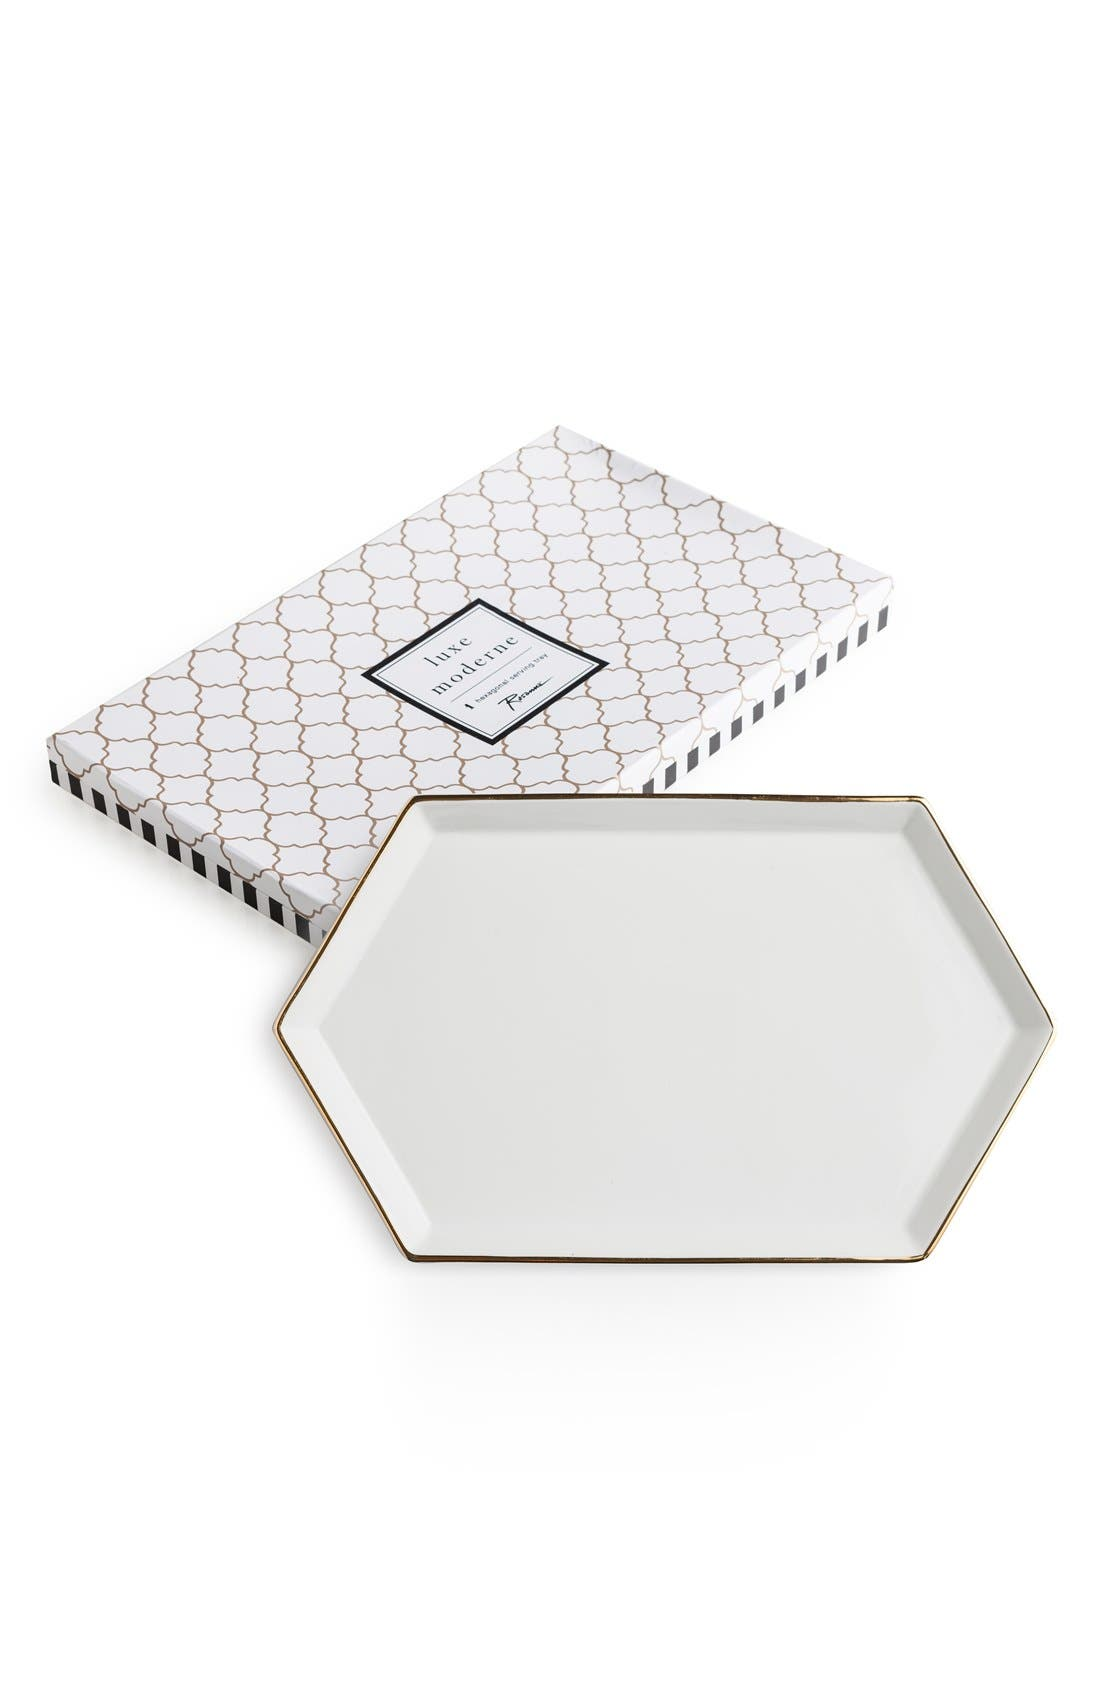 'Luxe Moderne' Hexagonal Tray by ROSANNA